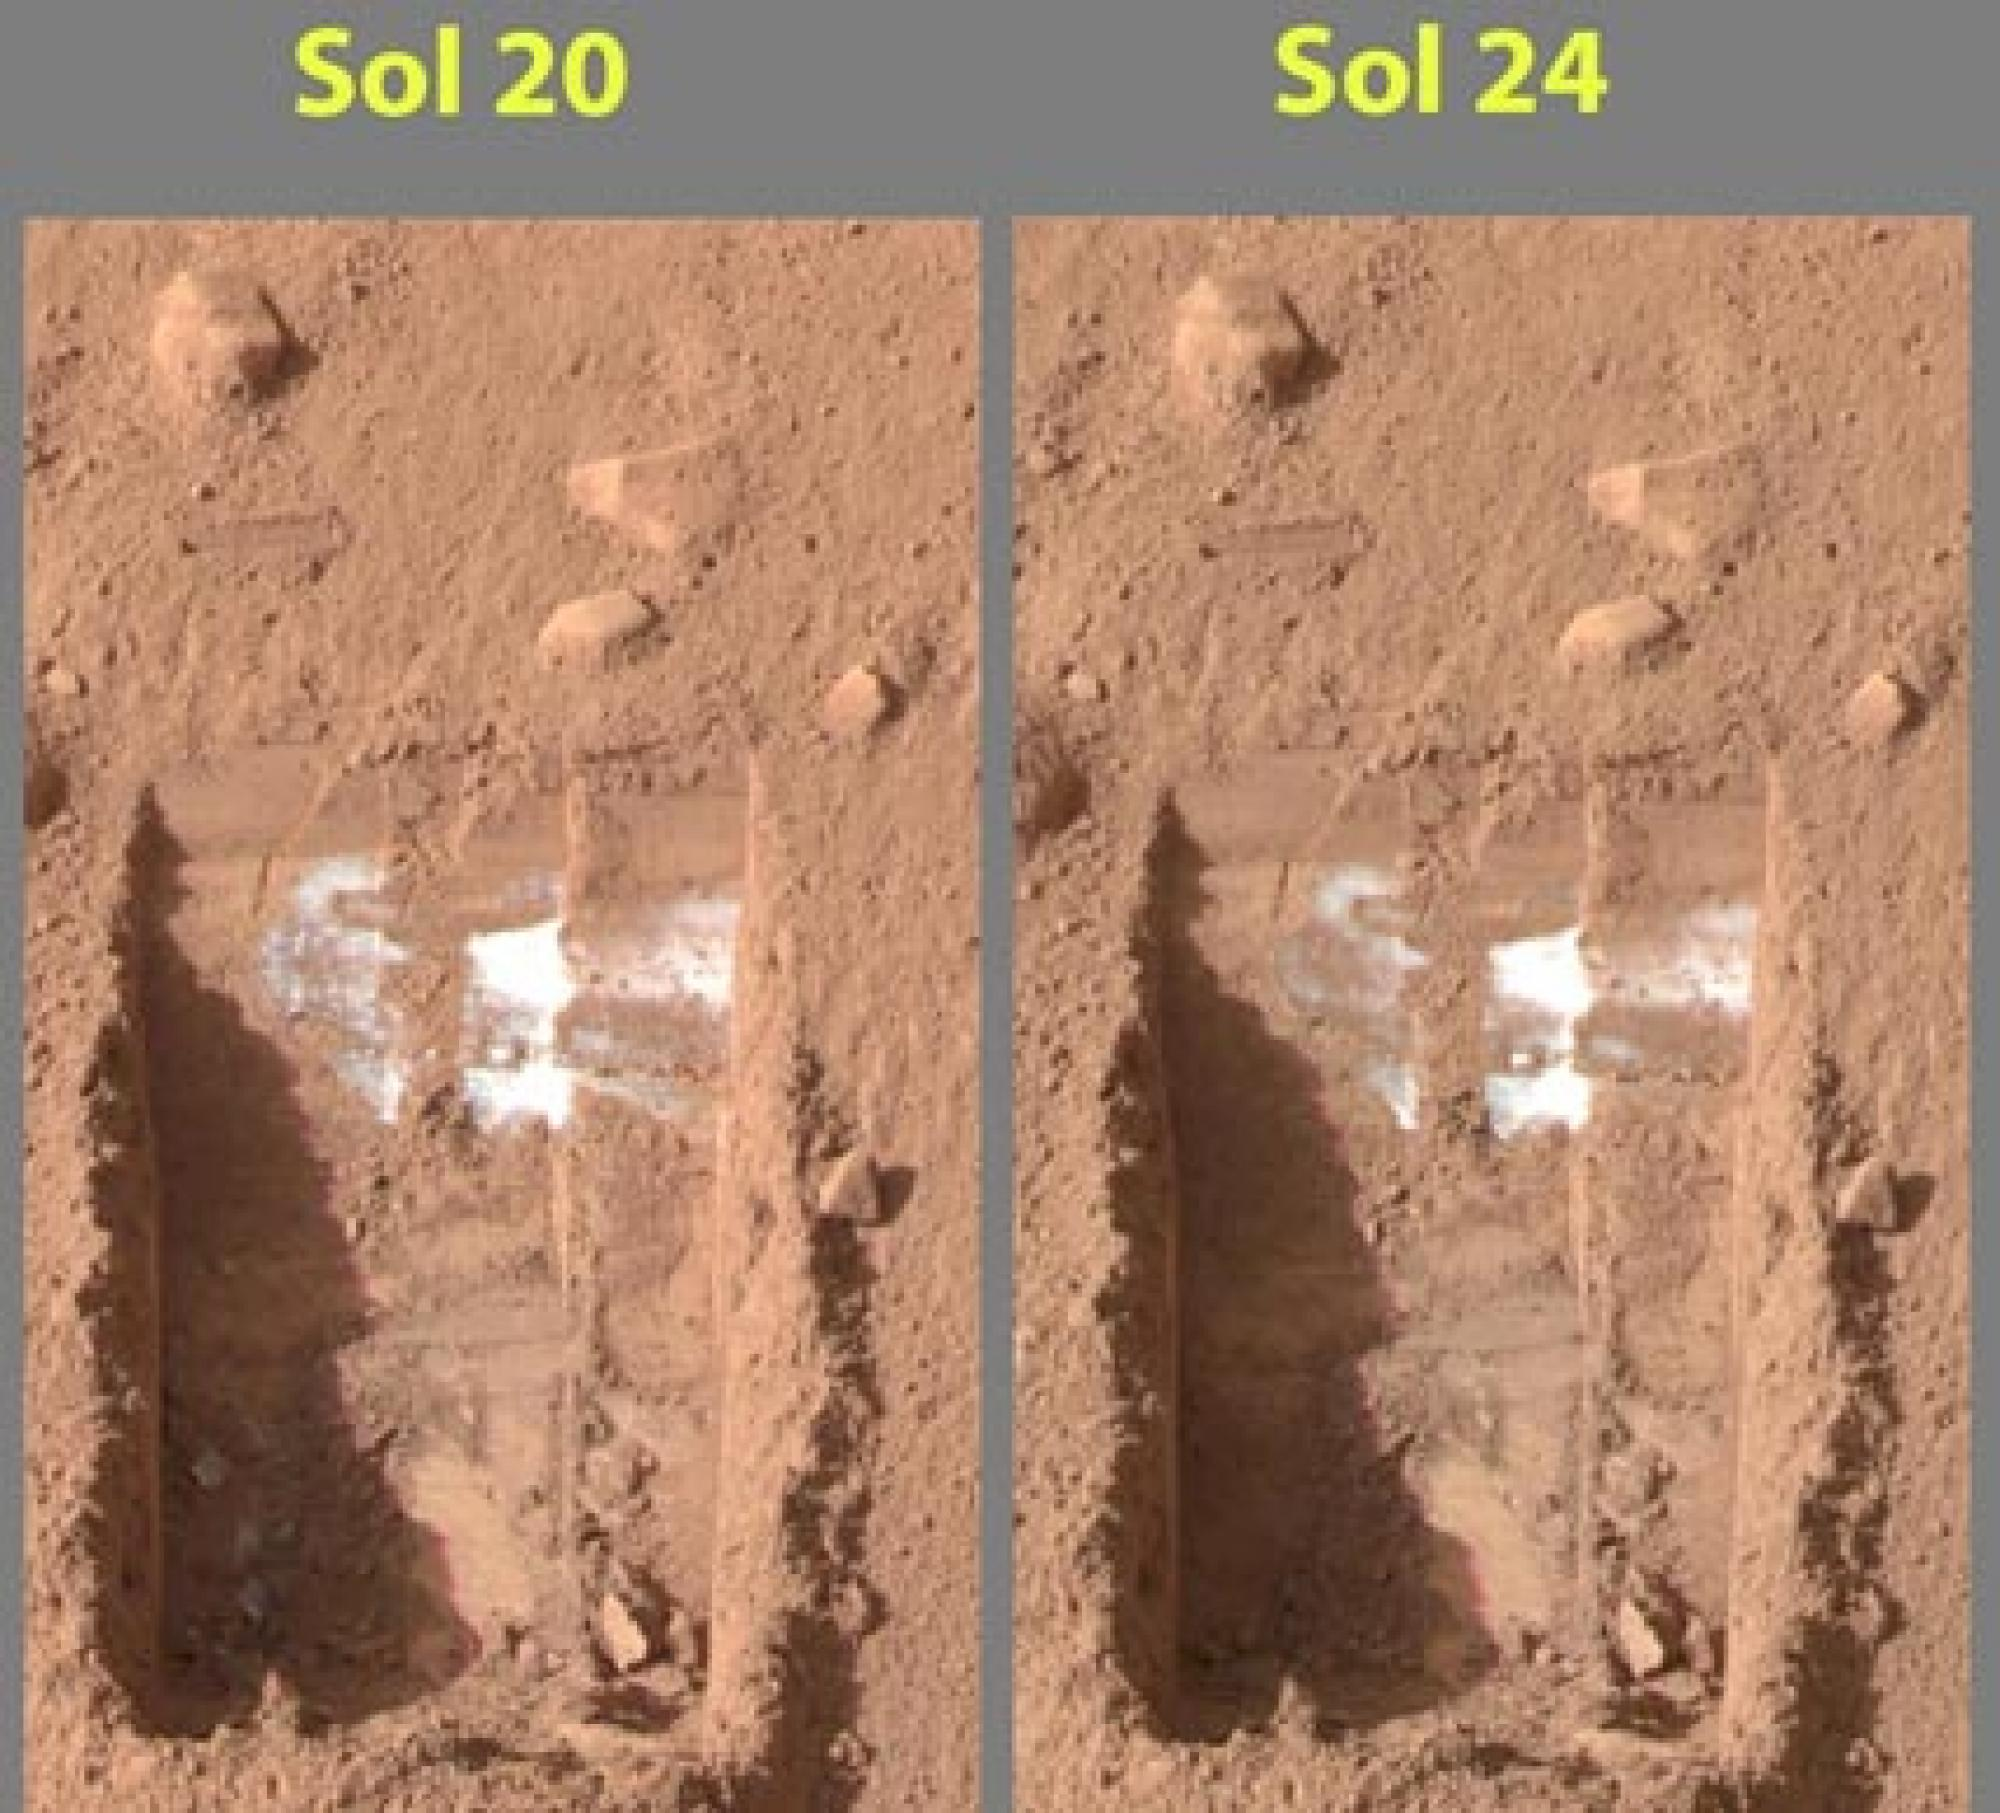 These color images were acquired by NASA's Phoenix Mars Lander's Surface Stereo Imager on the 21st and 25th days of the mission, or Sols 20 and 24 .